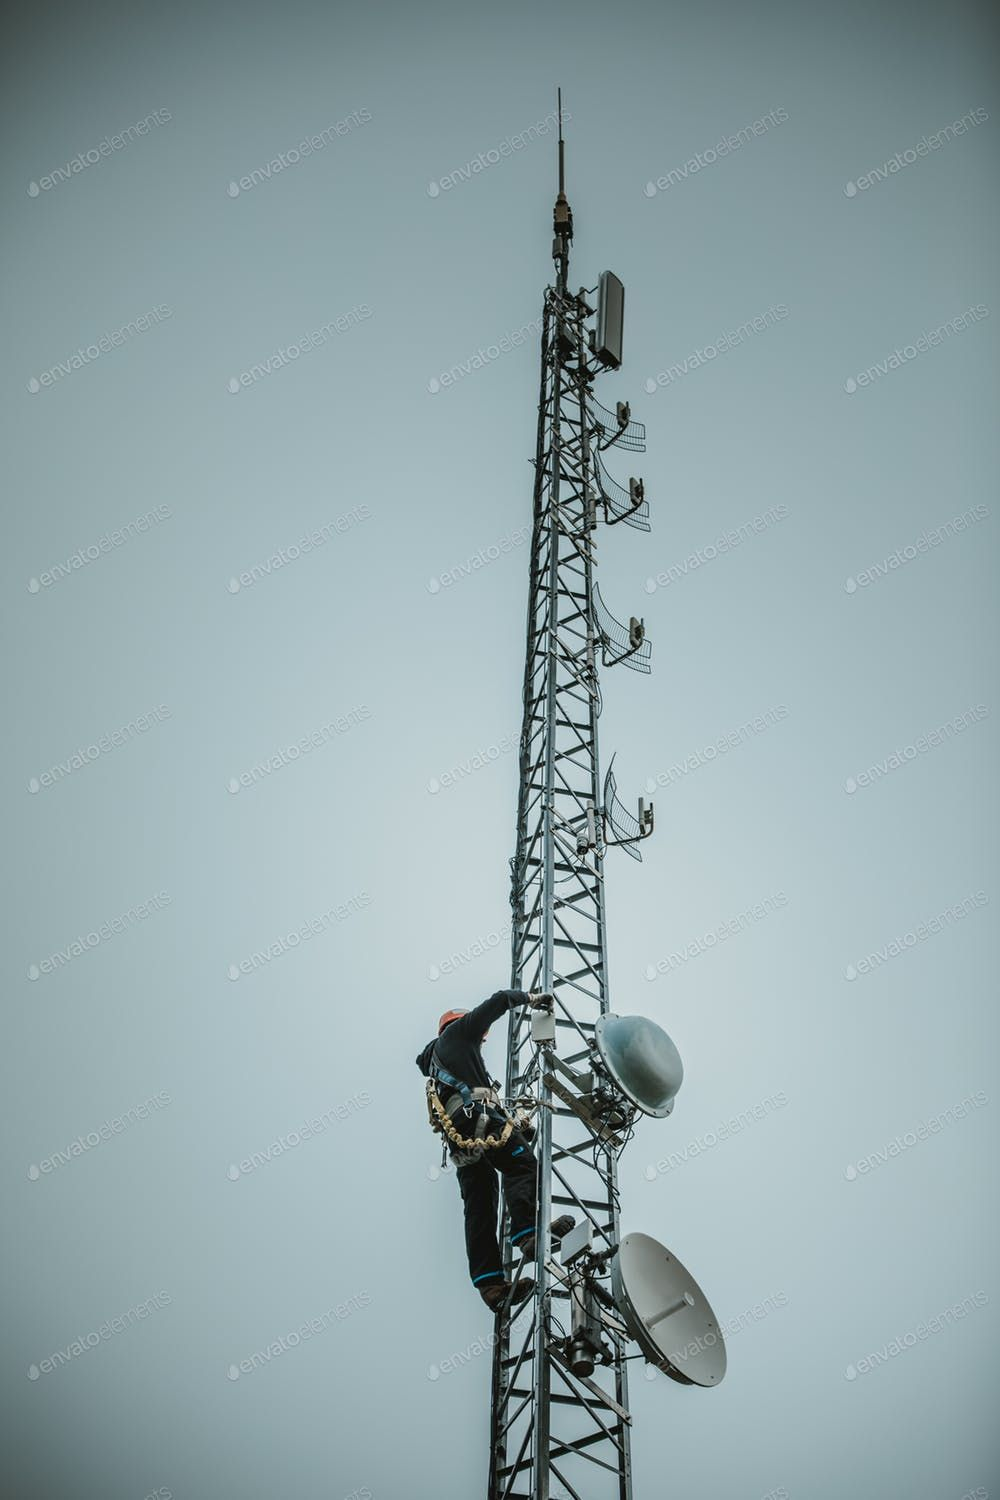 Telecom Worker Climbing Antenna Tower Photo By Aetb On Envato Elements Antenna Photo Tower